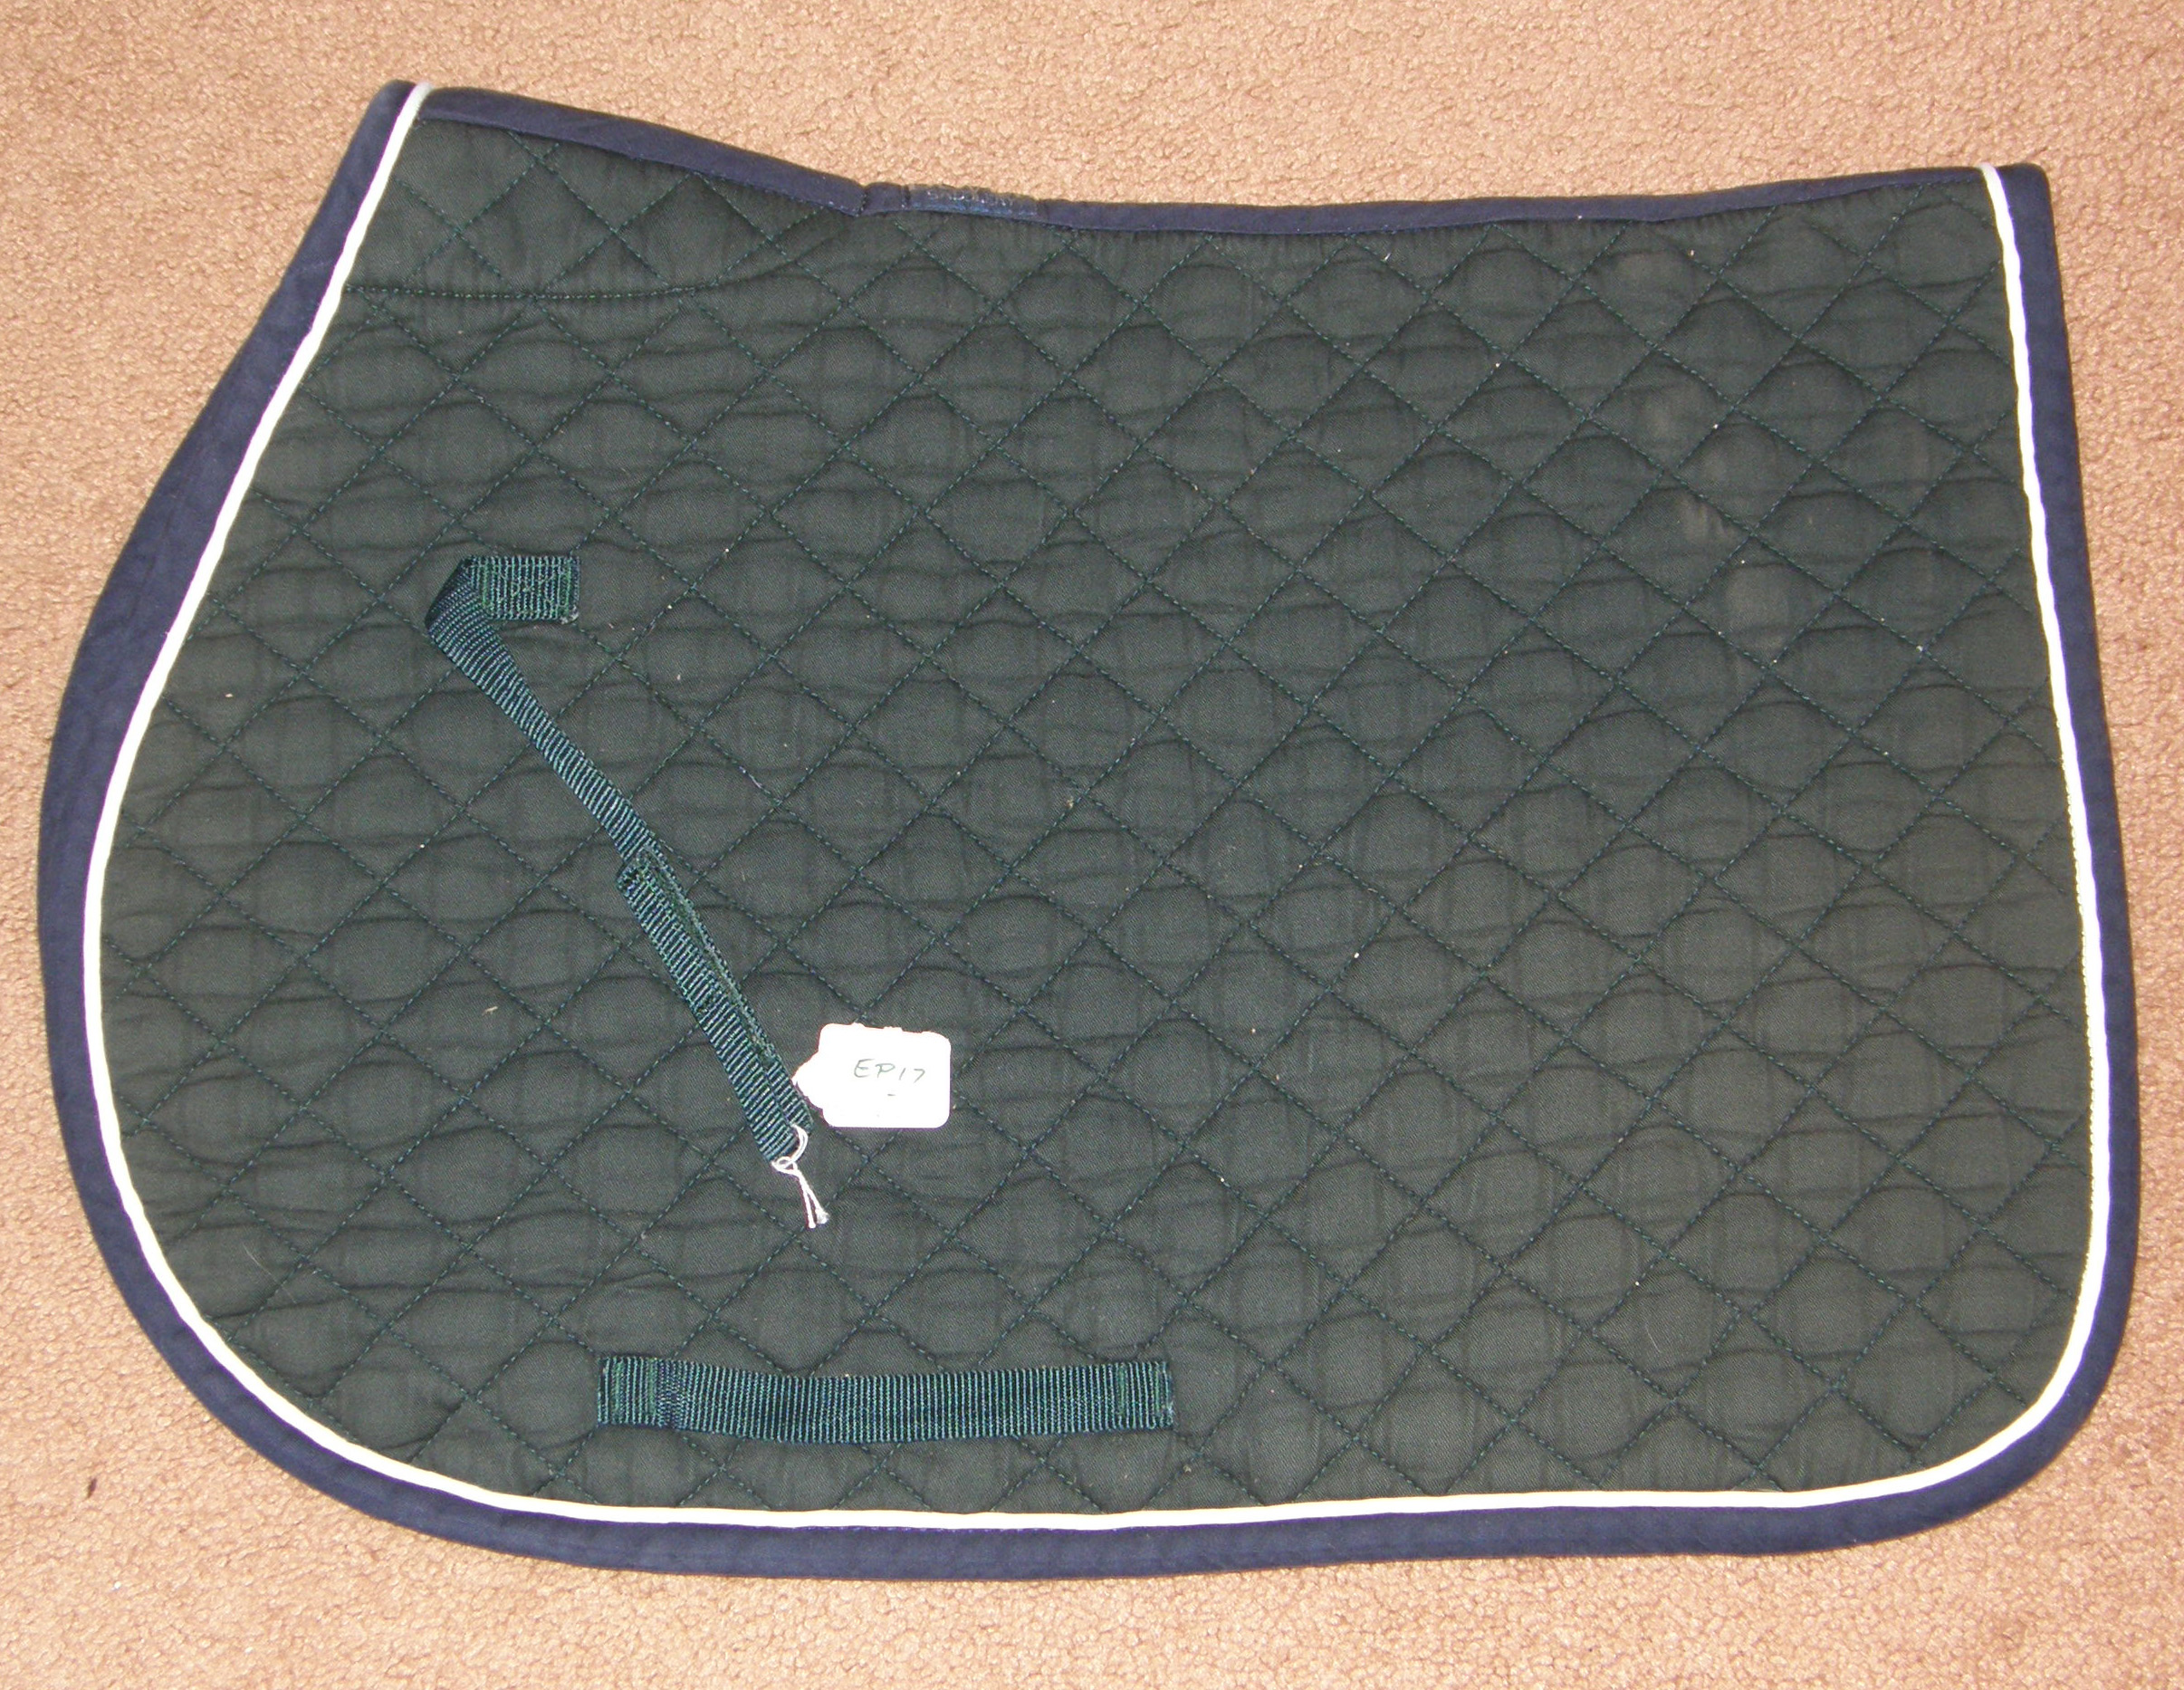 Dover Quilted Cotton Event Pad English Saddle Pad Hunter Green